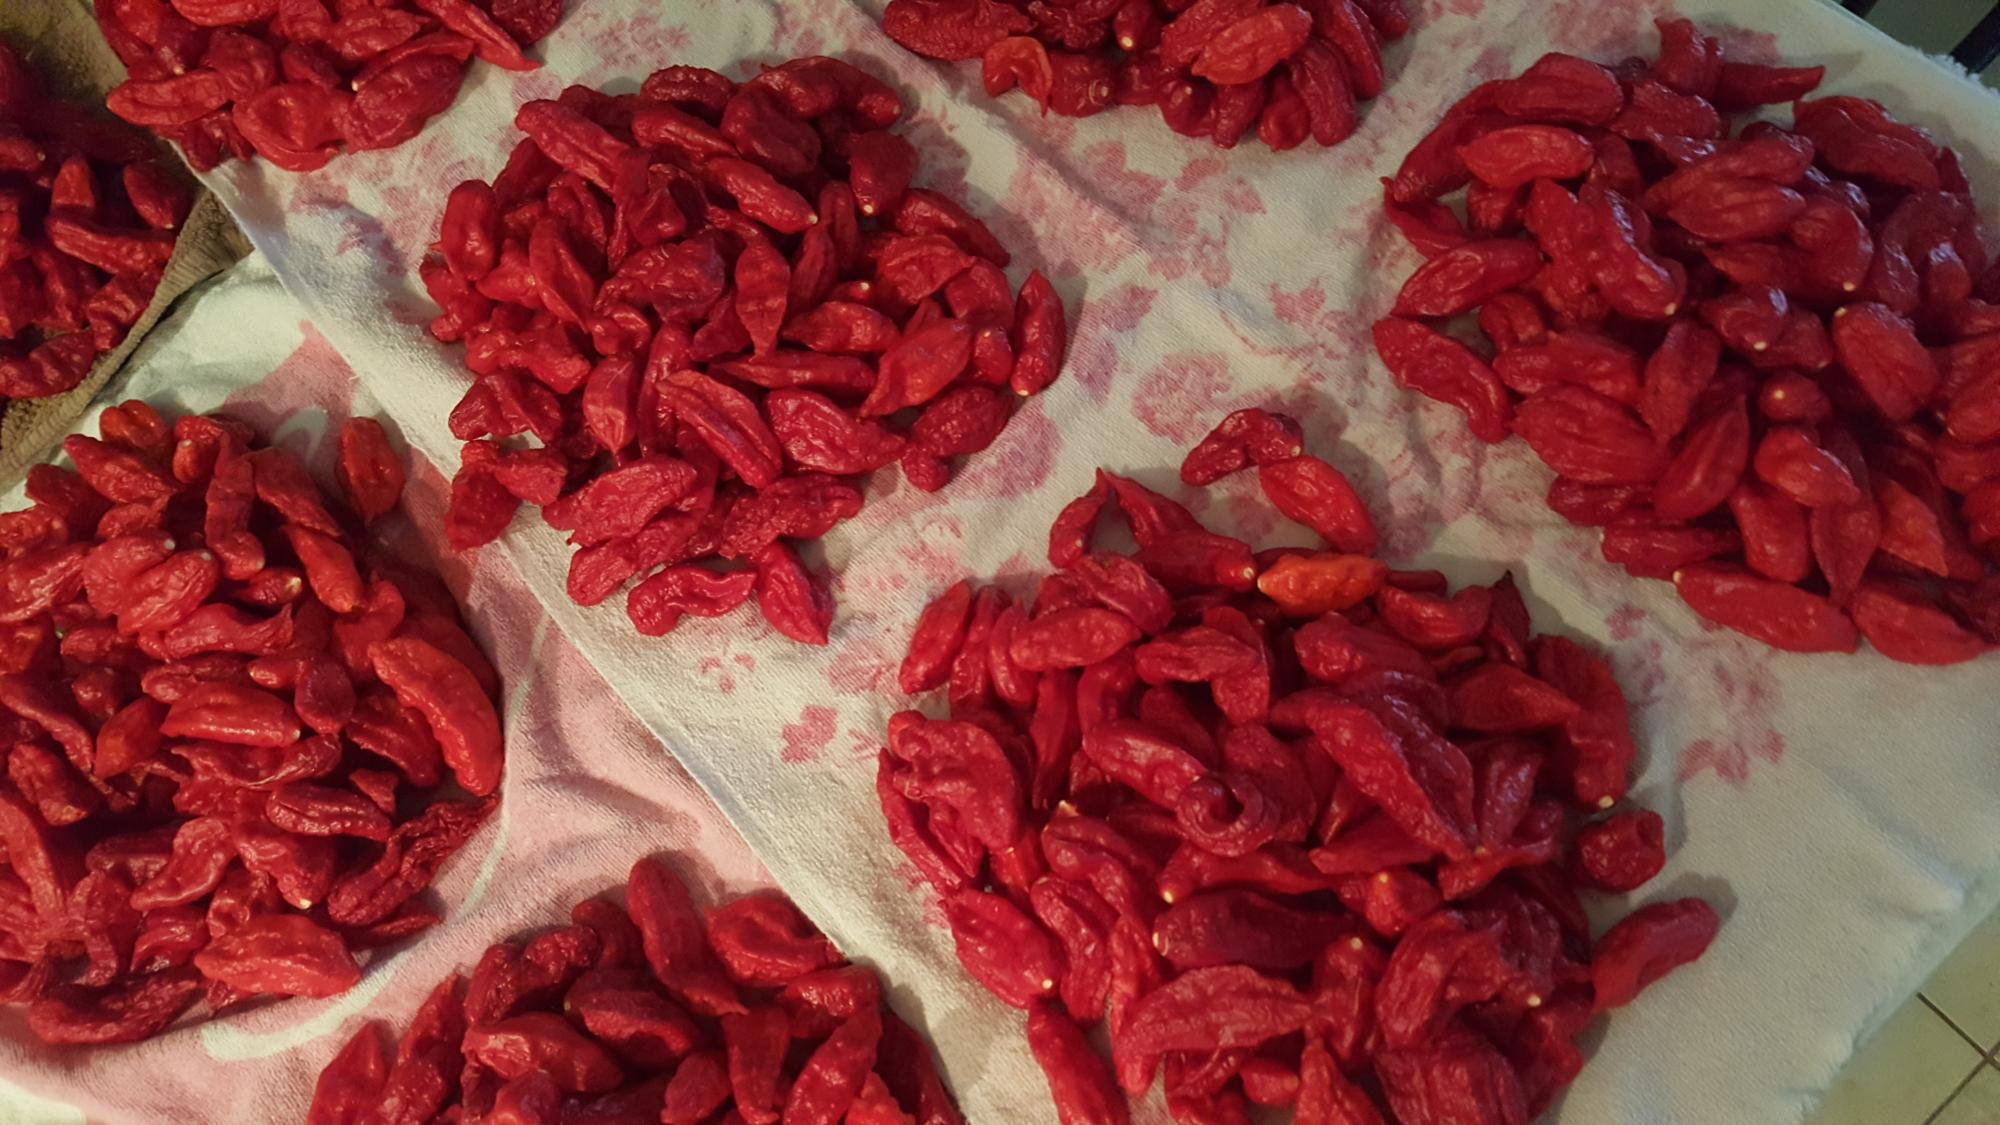 fresh ghost peppers for sale